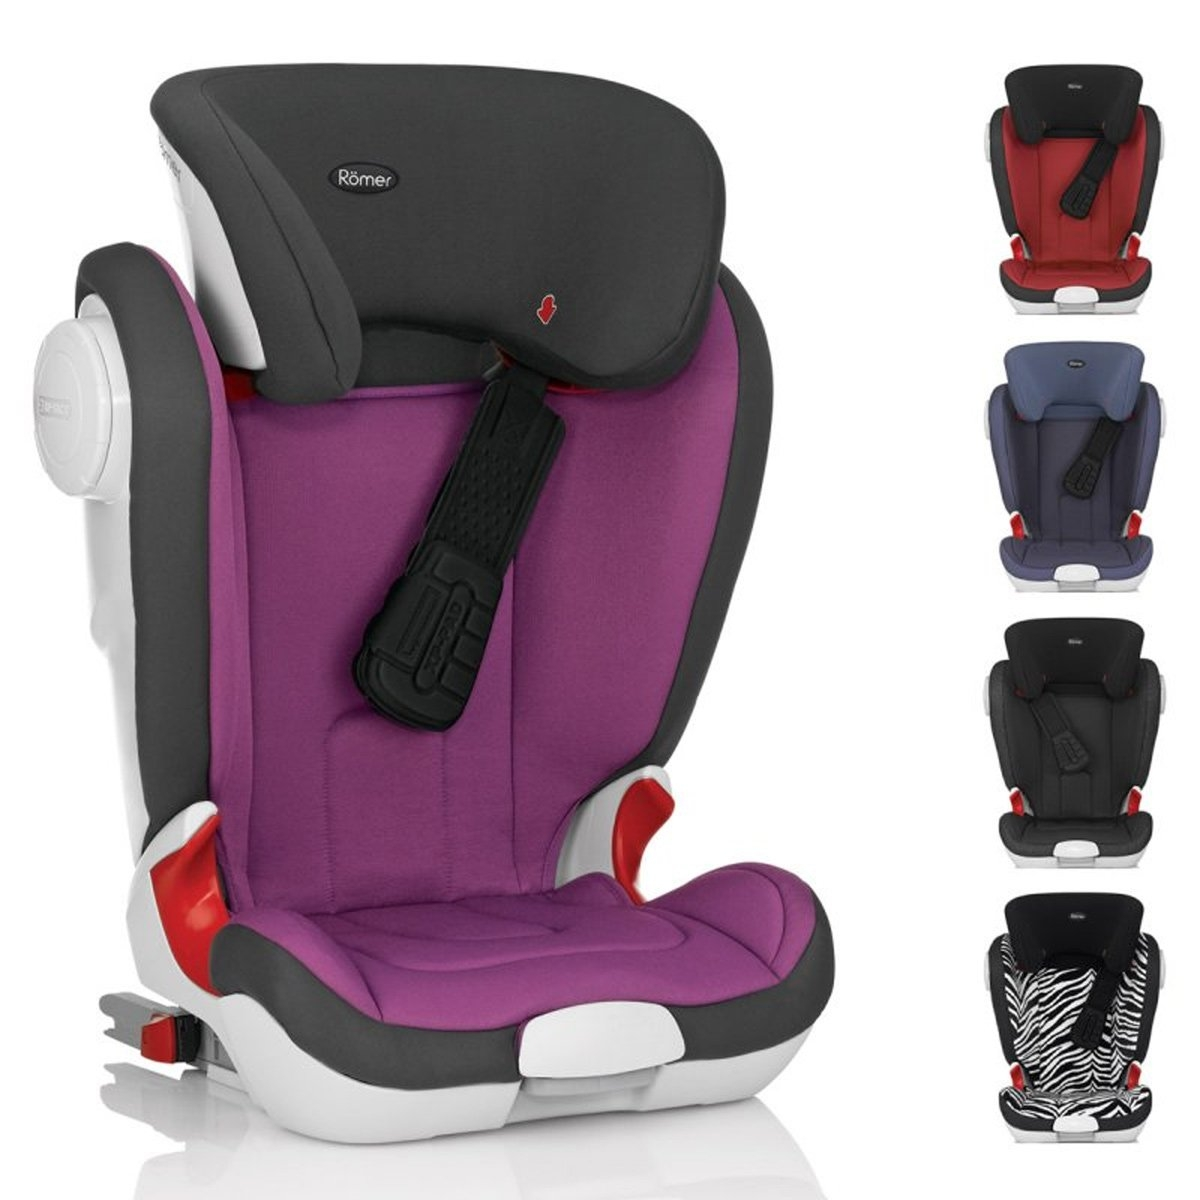 britax r mer auto kindersitz kidfix xp sict design 2015 farbe w hlbar ebay. Black Bedroom Furniture Sets. Home Design Ideas